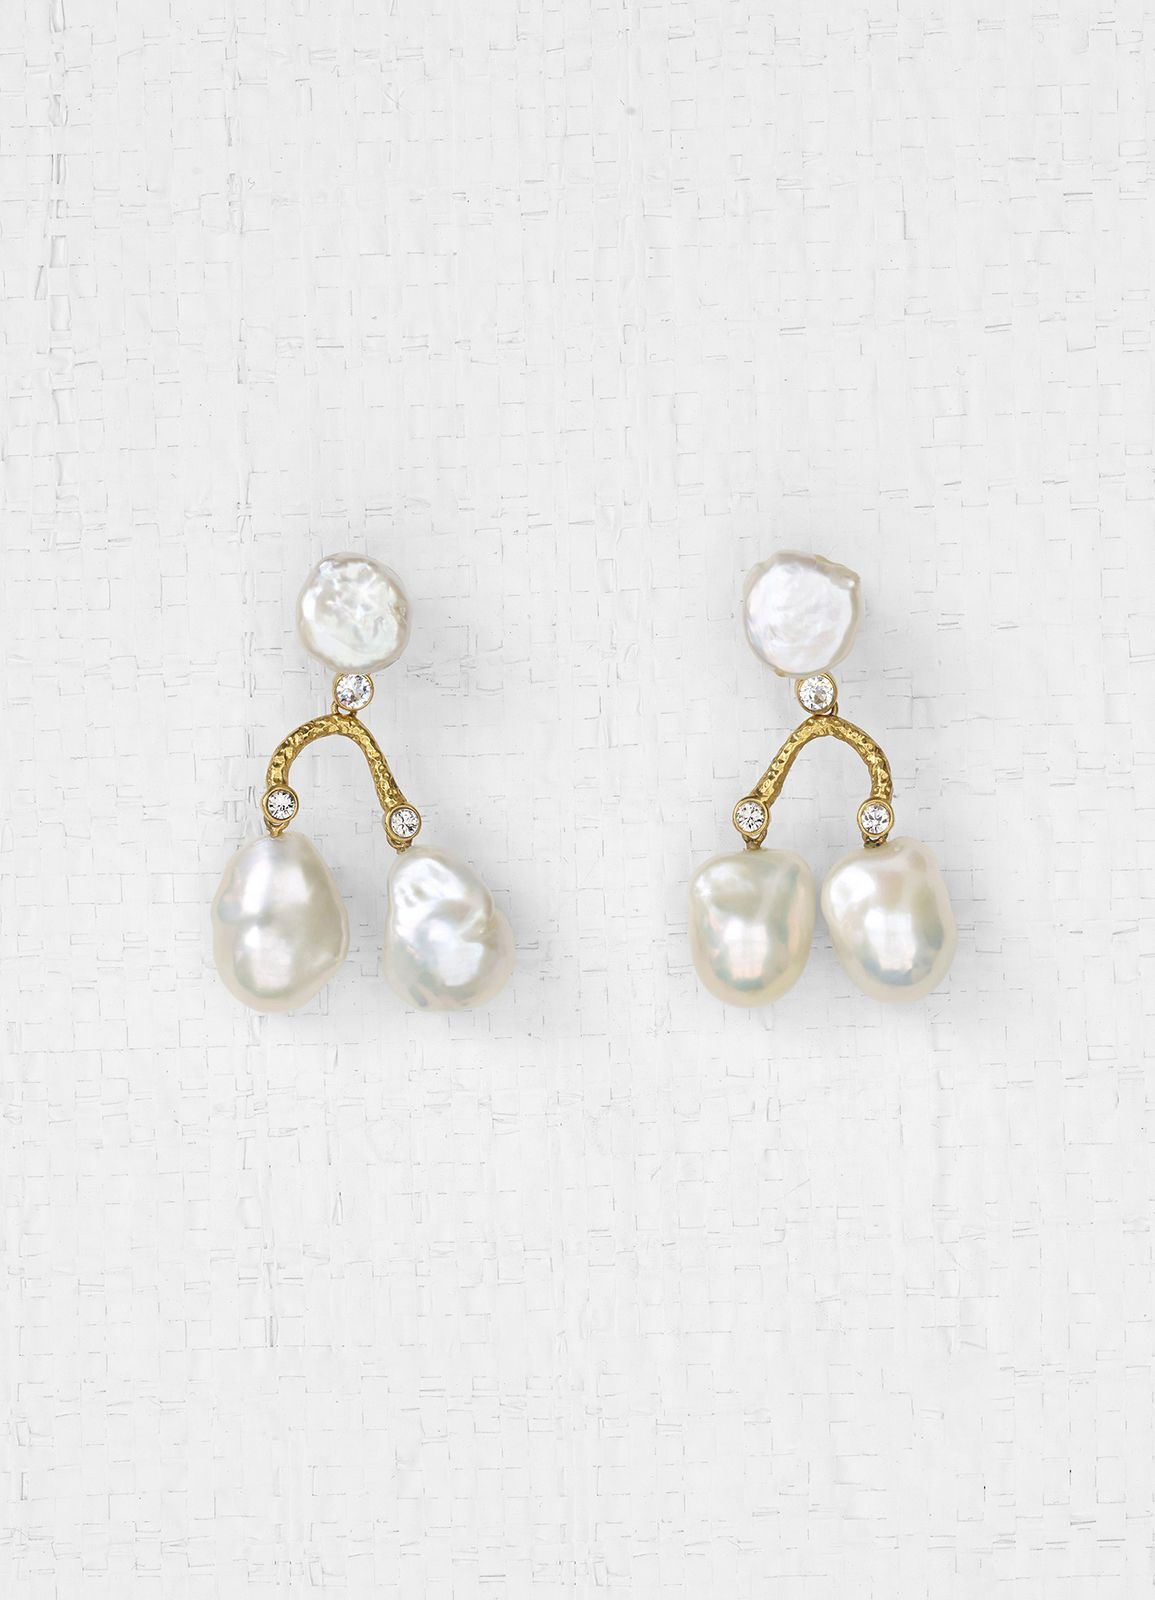 70b1014be Baroque earrings in cultured pearls, strass and brass | CÉLINE ...